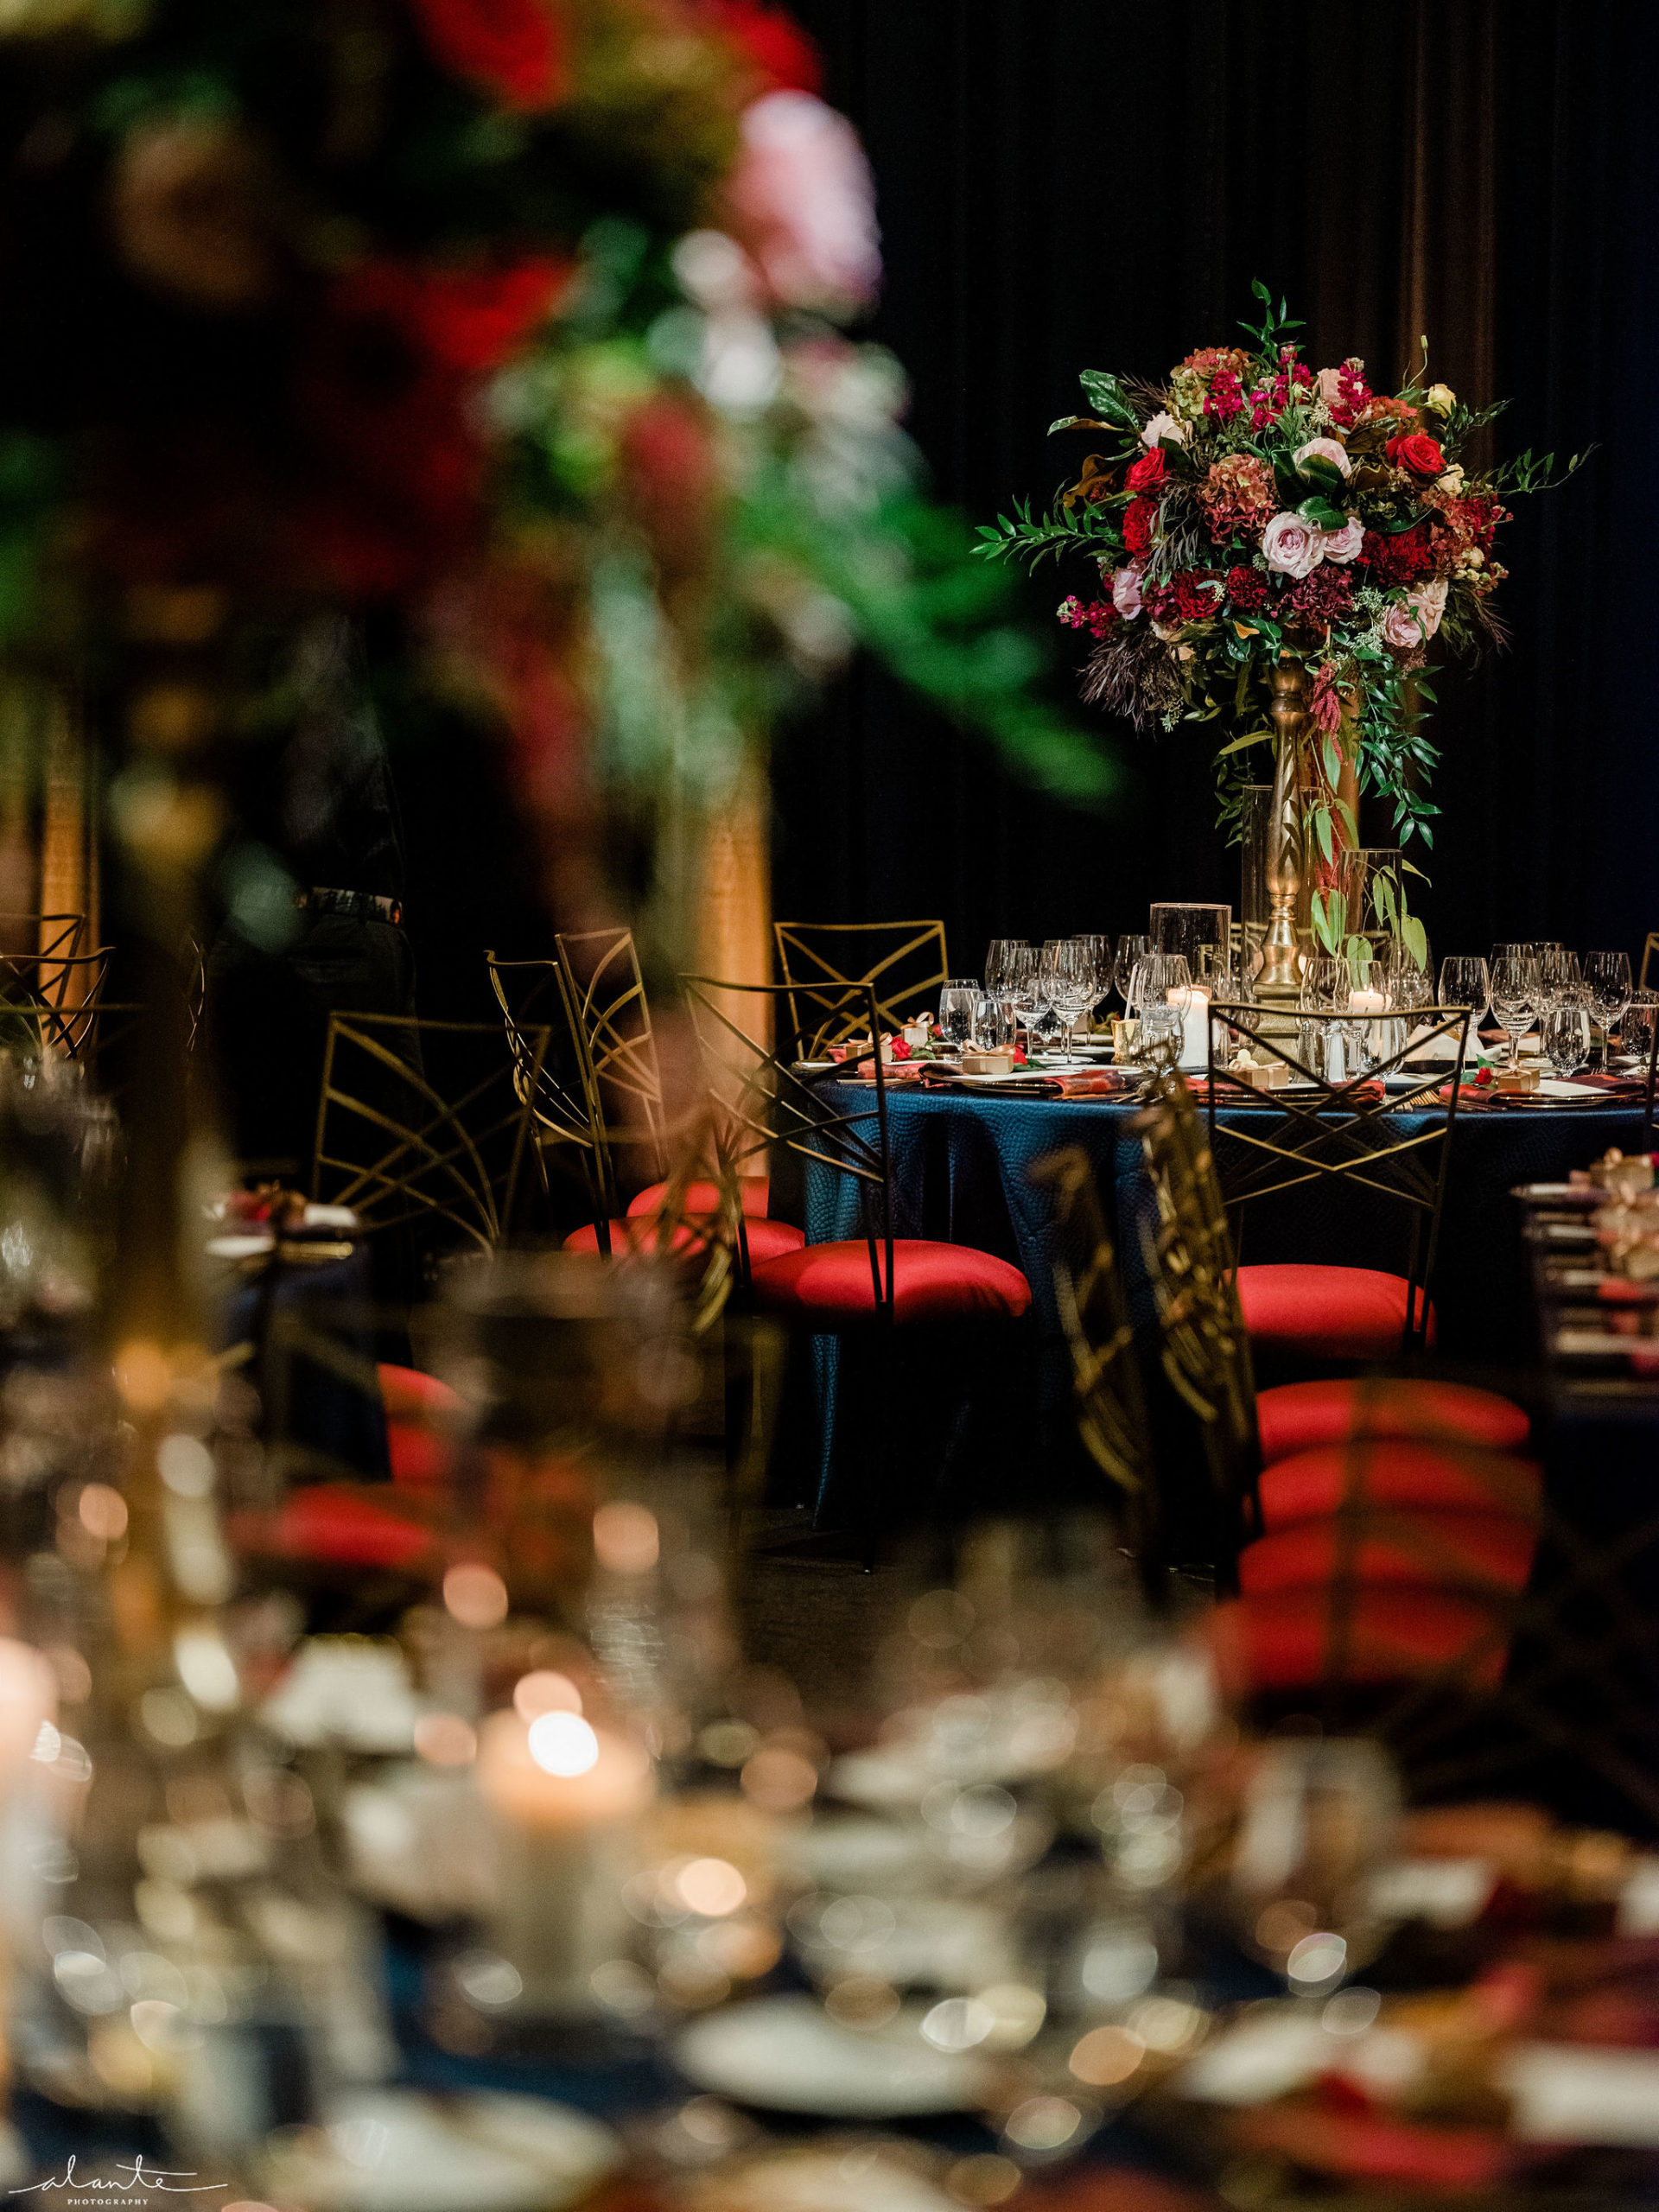 Dramatic winter wedding reception with tall floral centerpieces of red antique hydrangea, roses, and greenery.